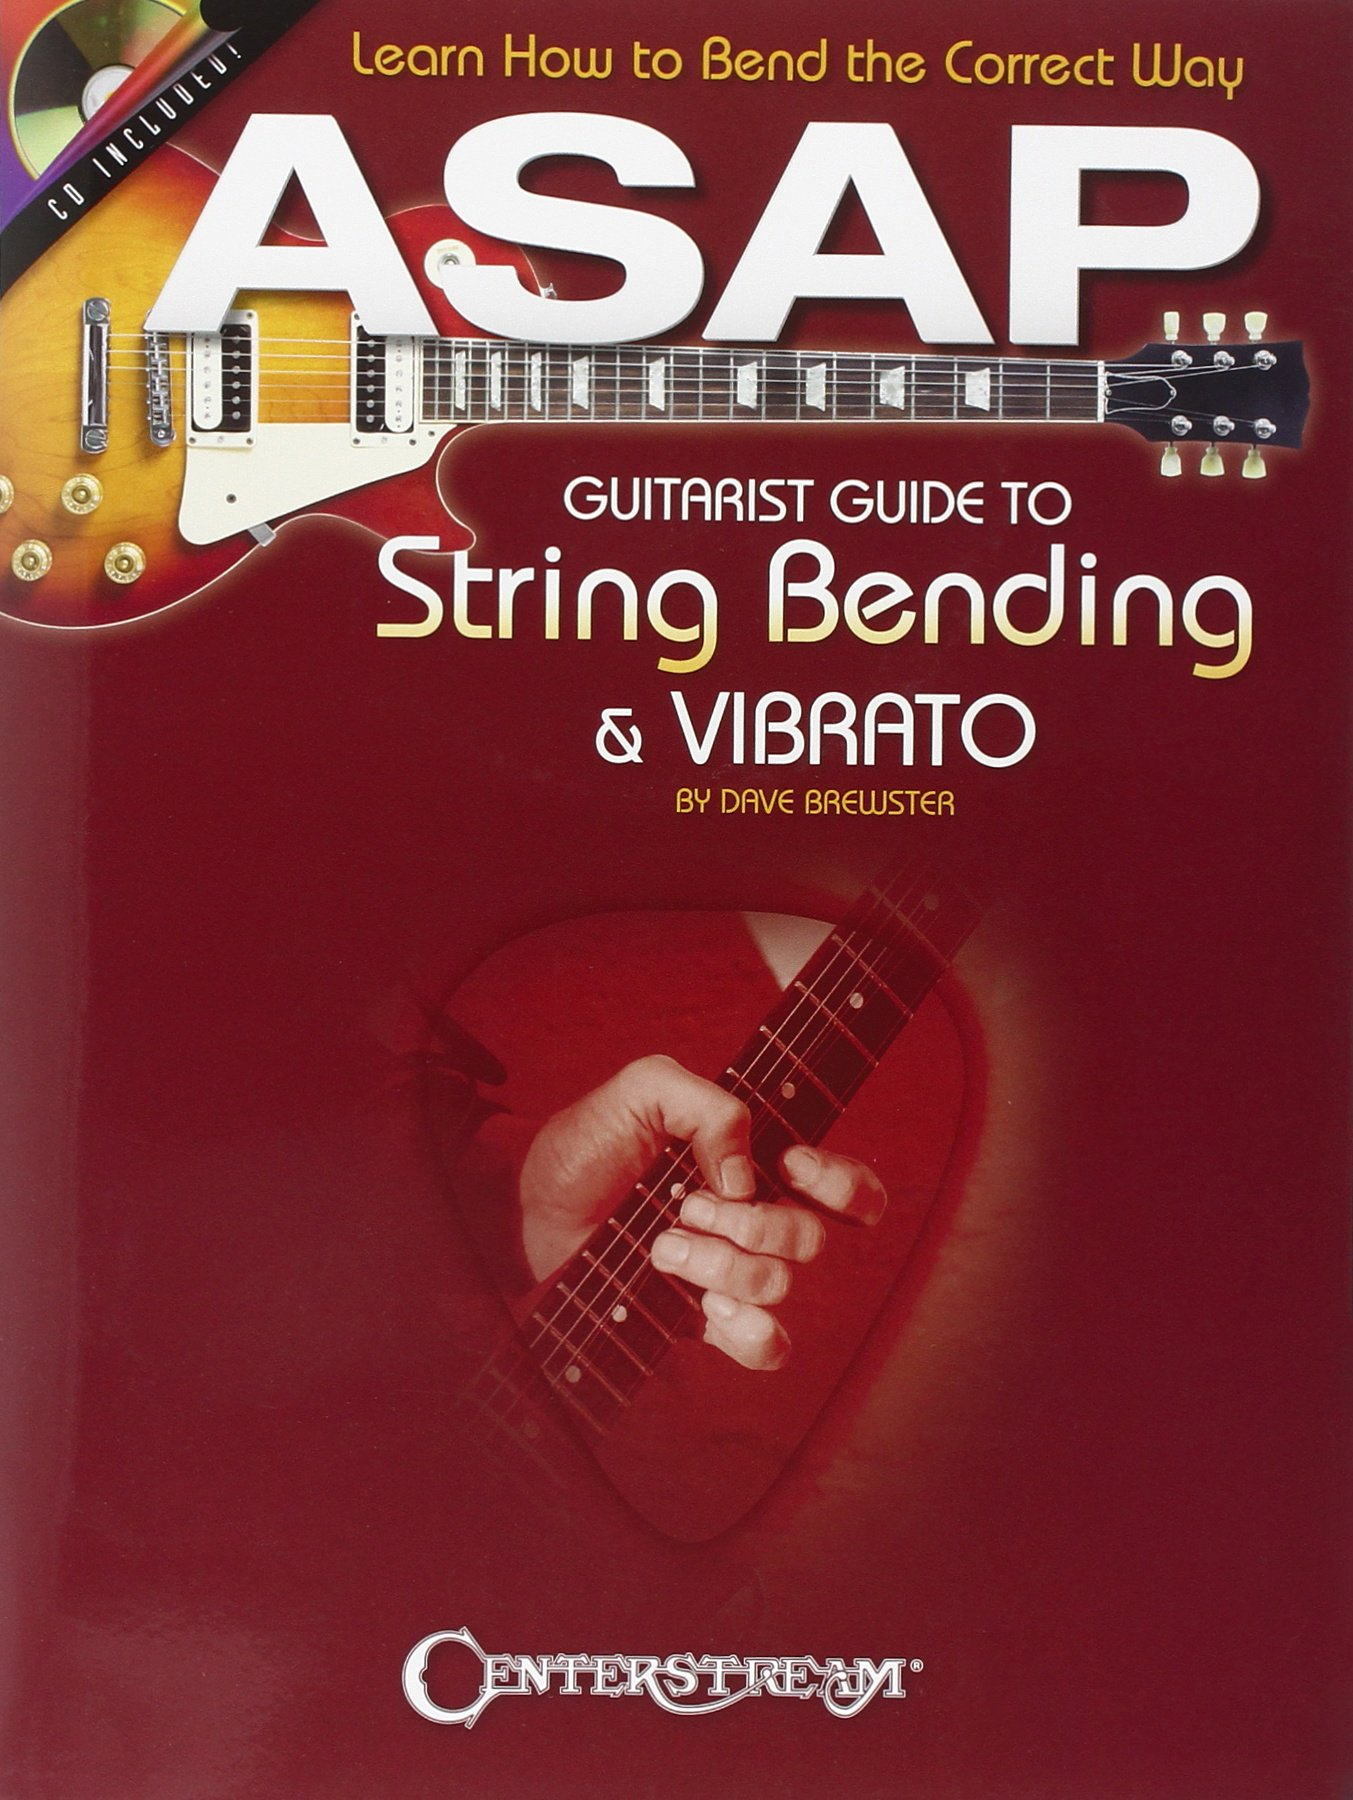 Asap Guitarist Guide to String Bending and Vibrato: Learn How to ...